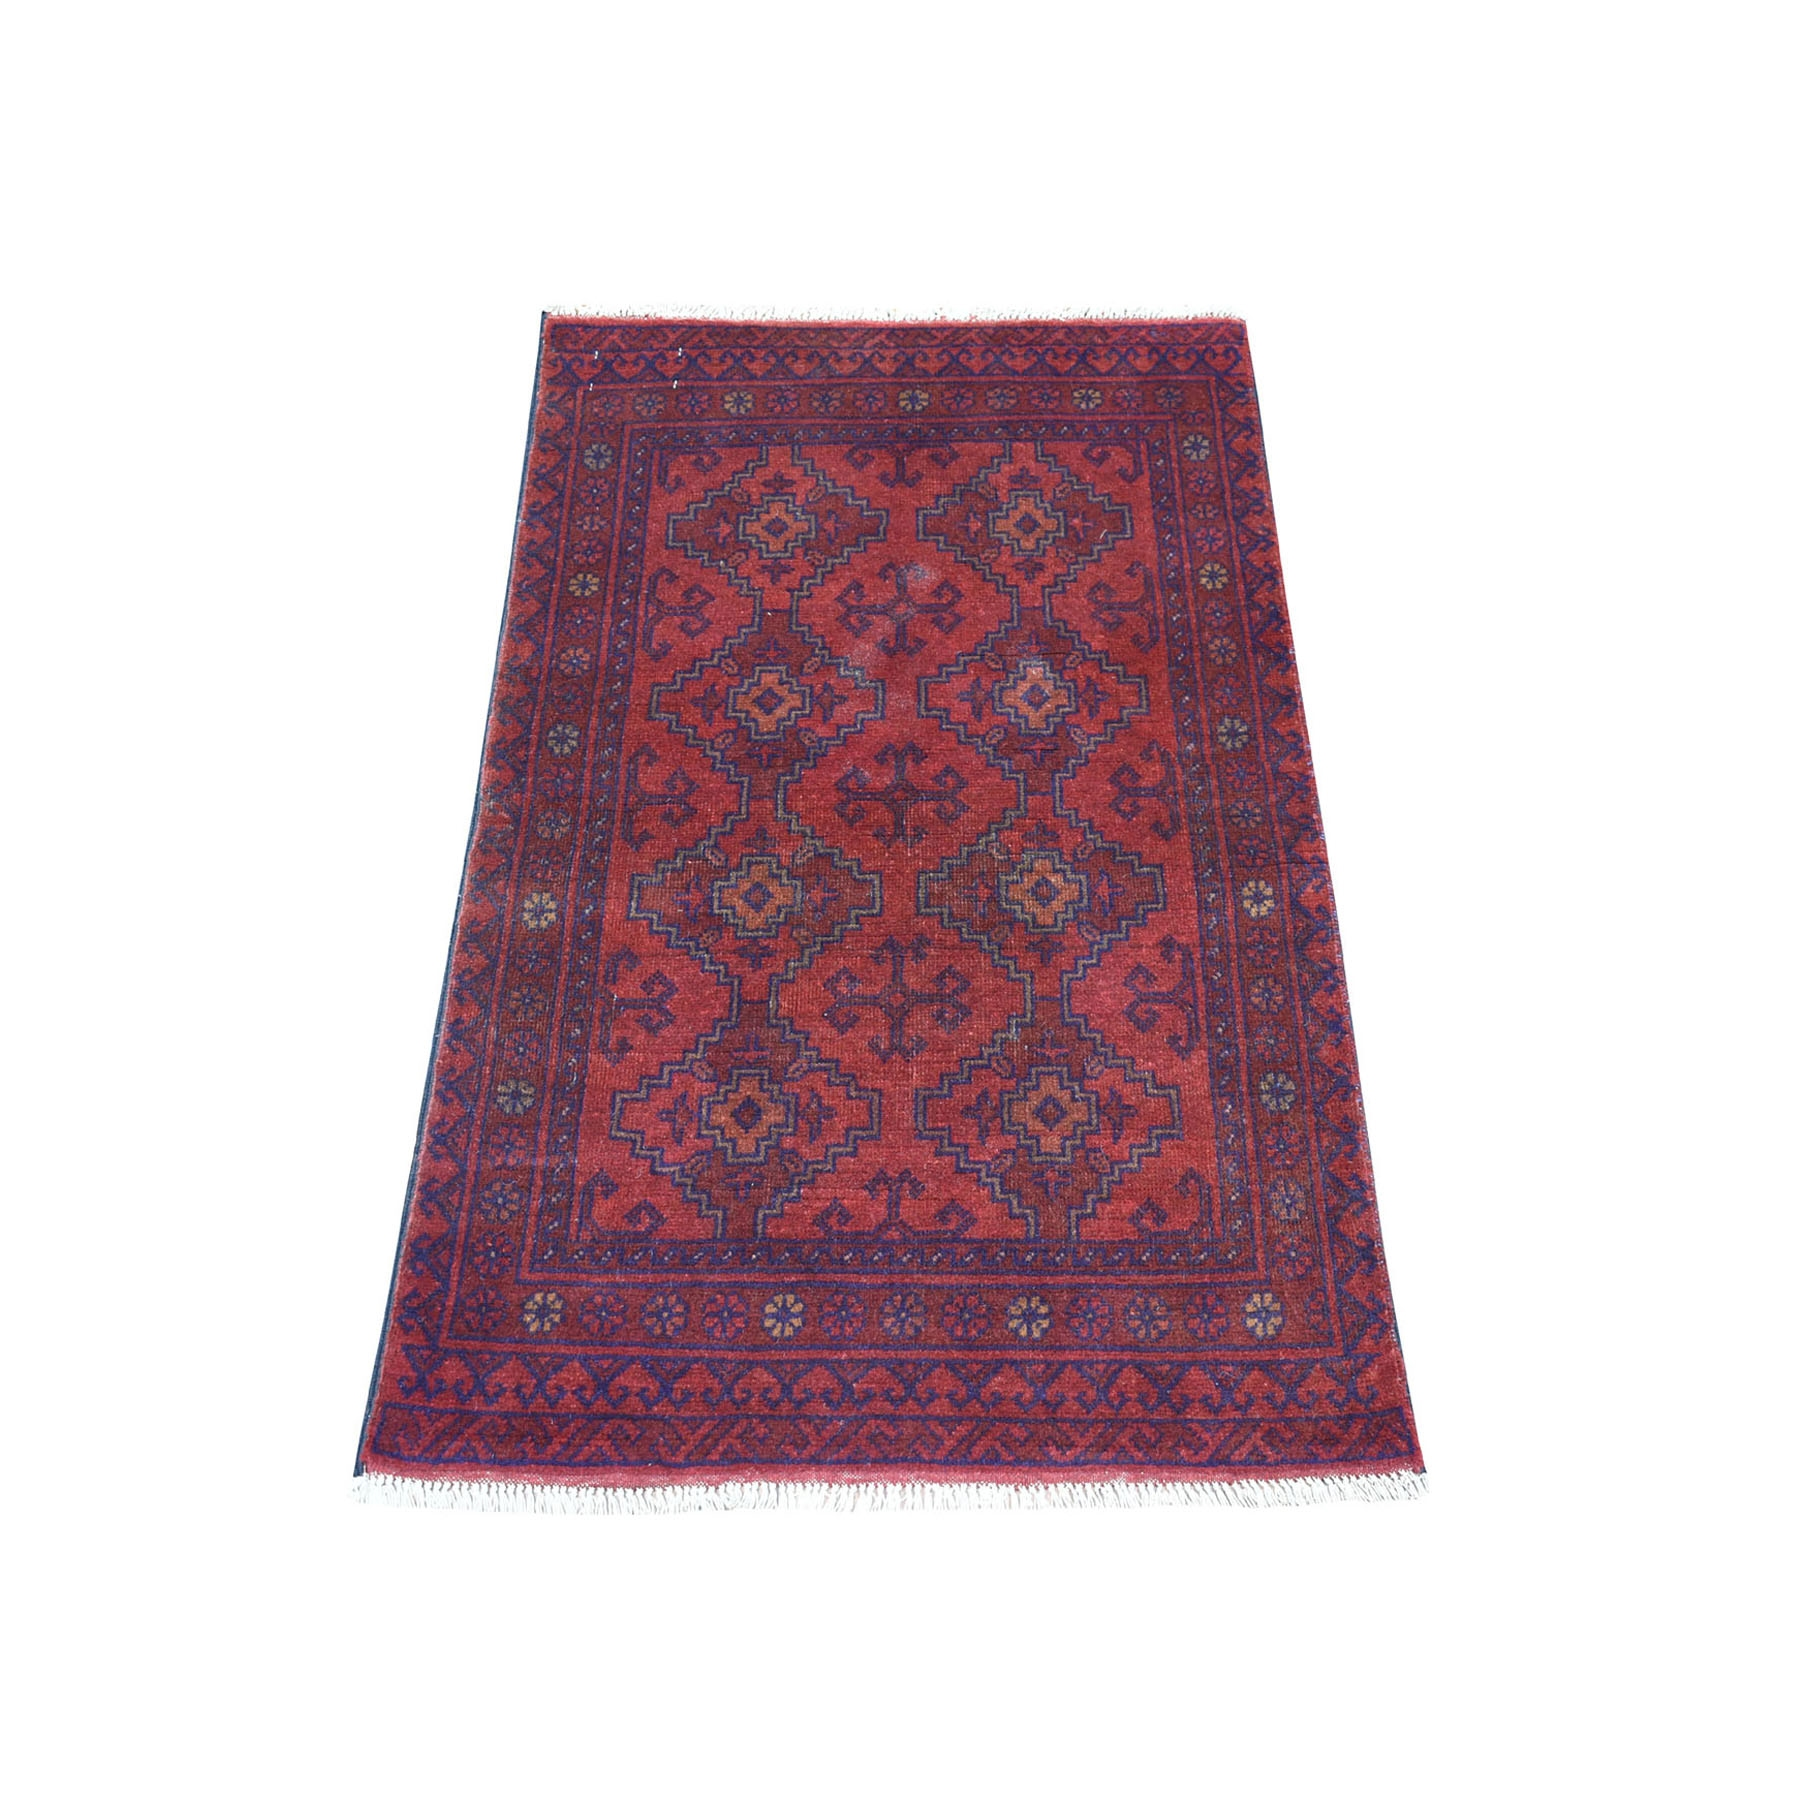 "2'5""x3'10"" Deep and Saturated Red Geometric Afghan Andkhoy Pure Wool Hand Knotted Oriental Rug 53722"